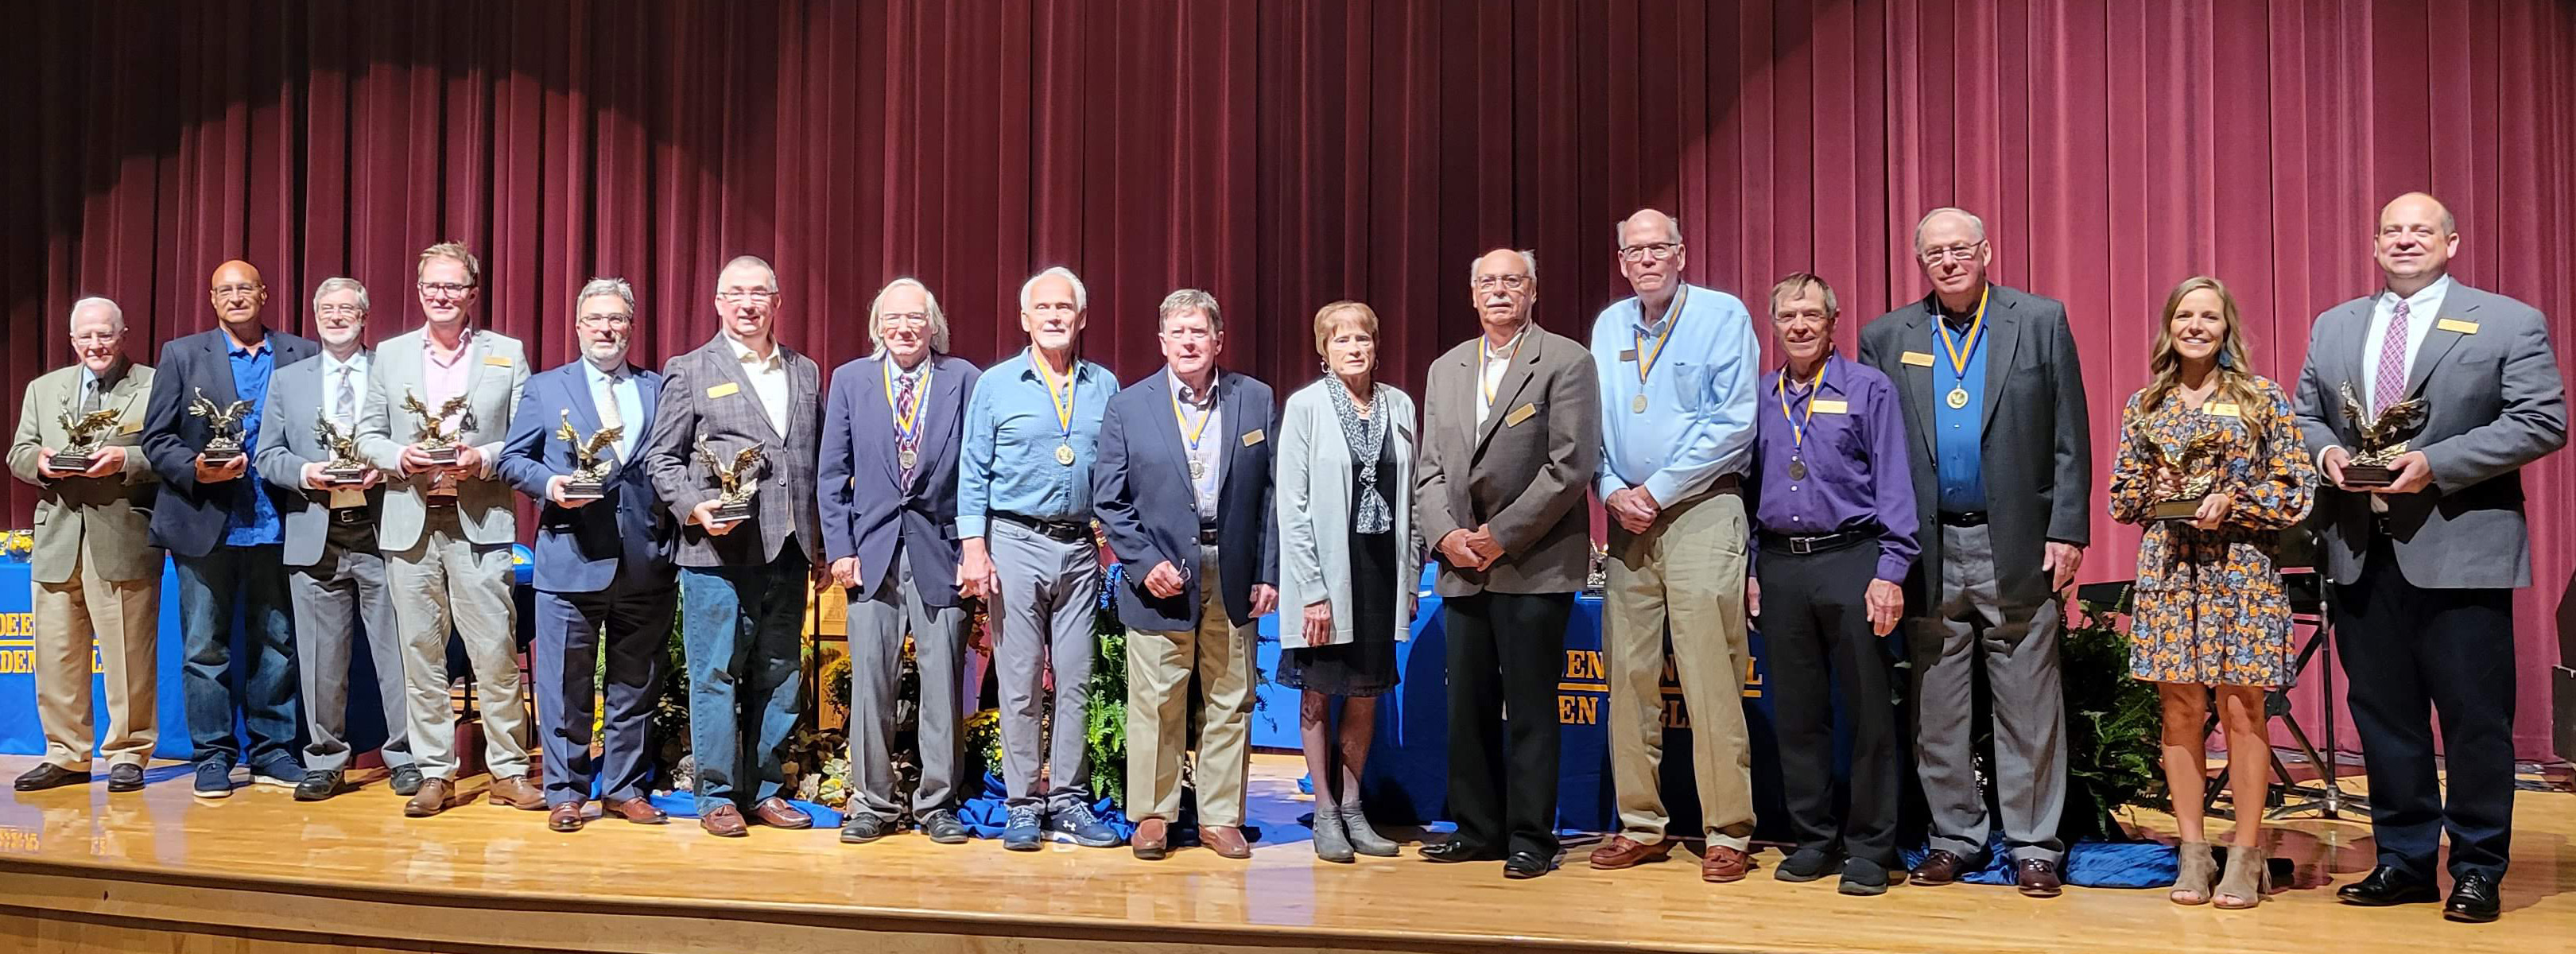 2021 Aberdeen Central Hall of Fame inductees